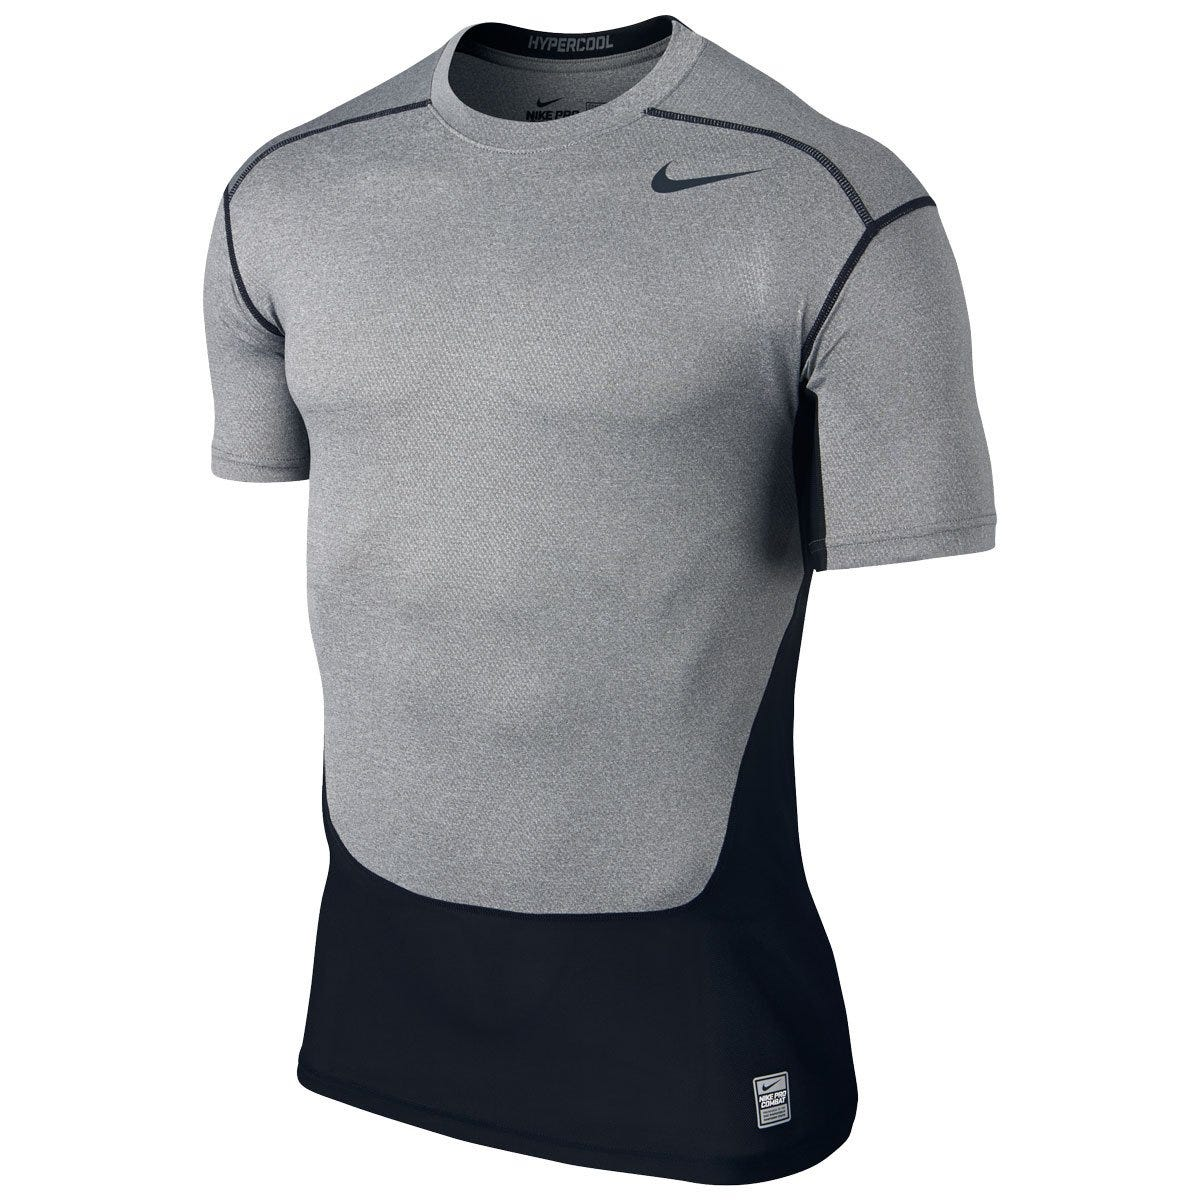 Nike Pro Hypercool Senior Compression Short Sleeve Shirt